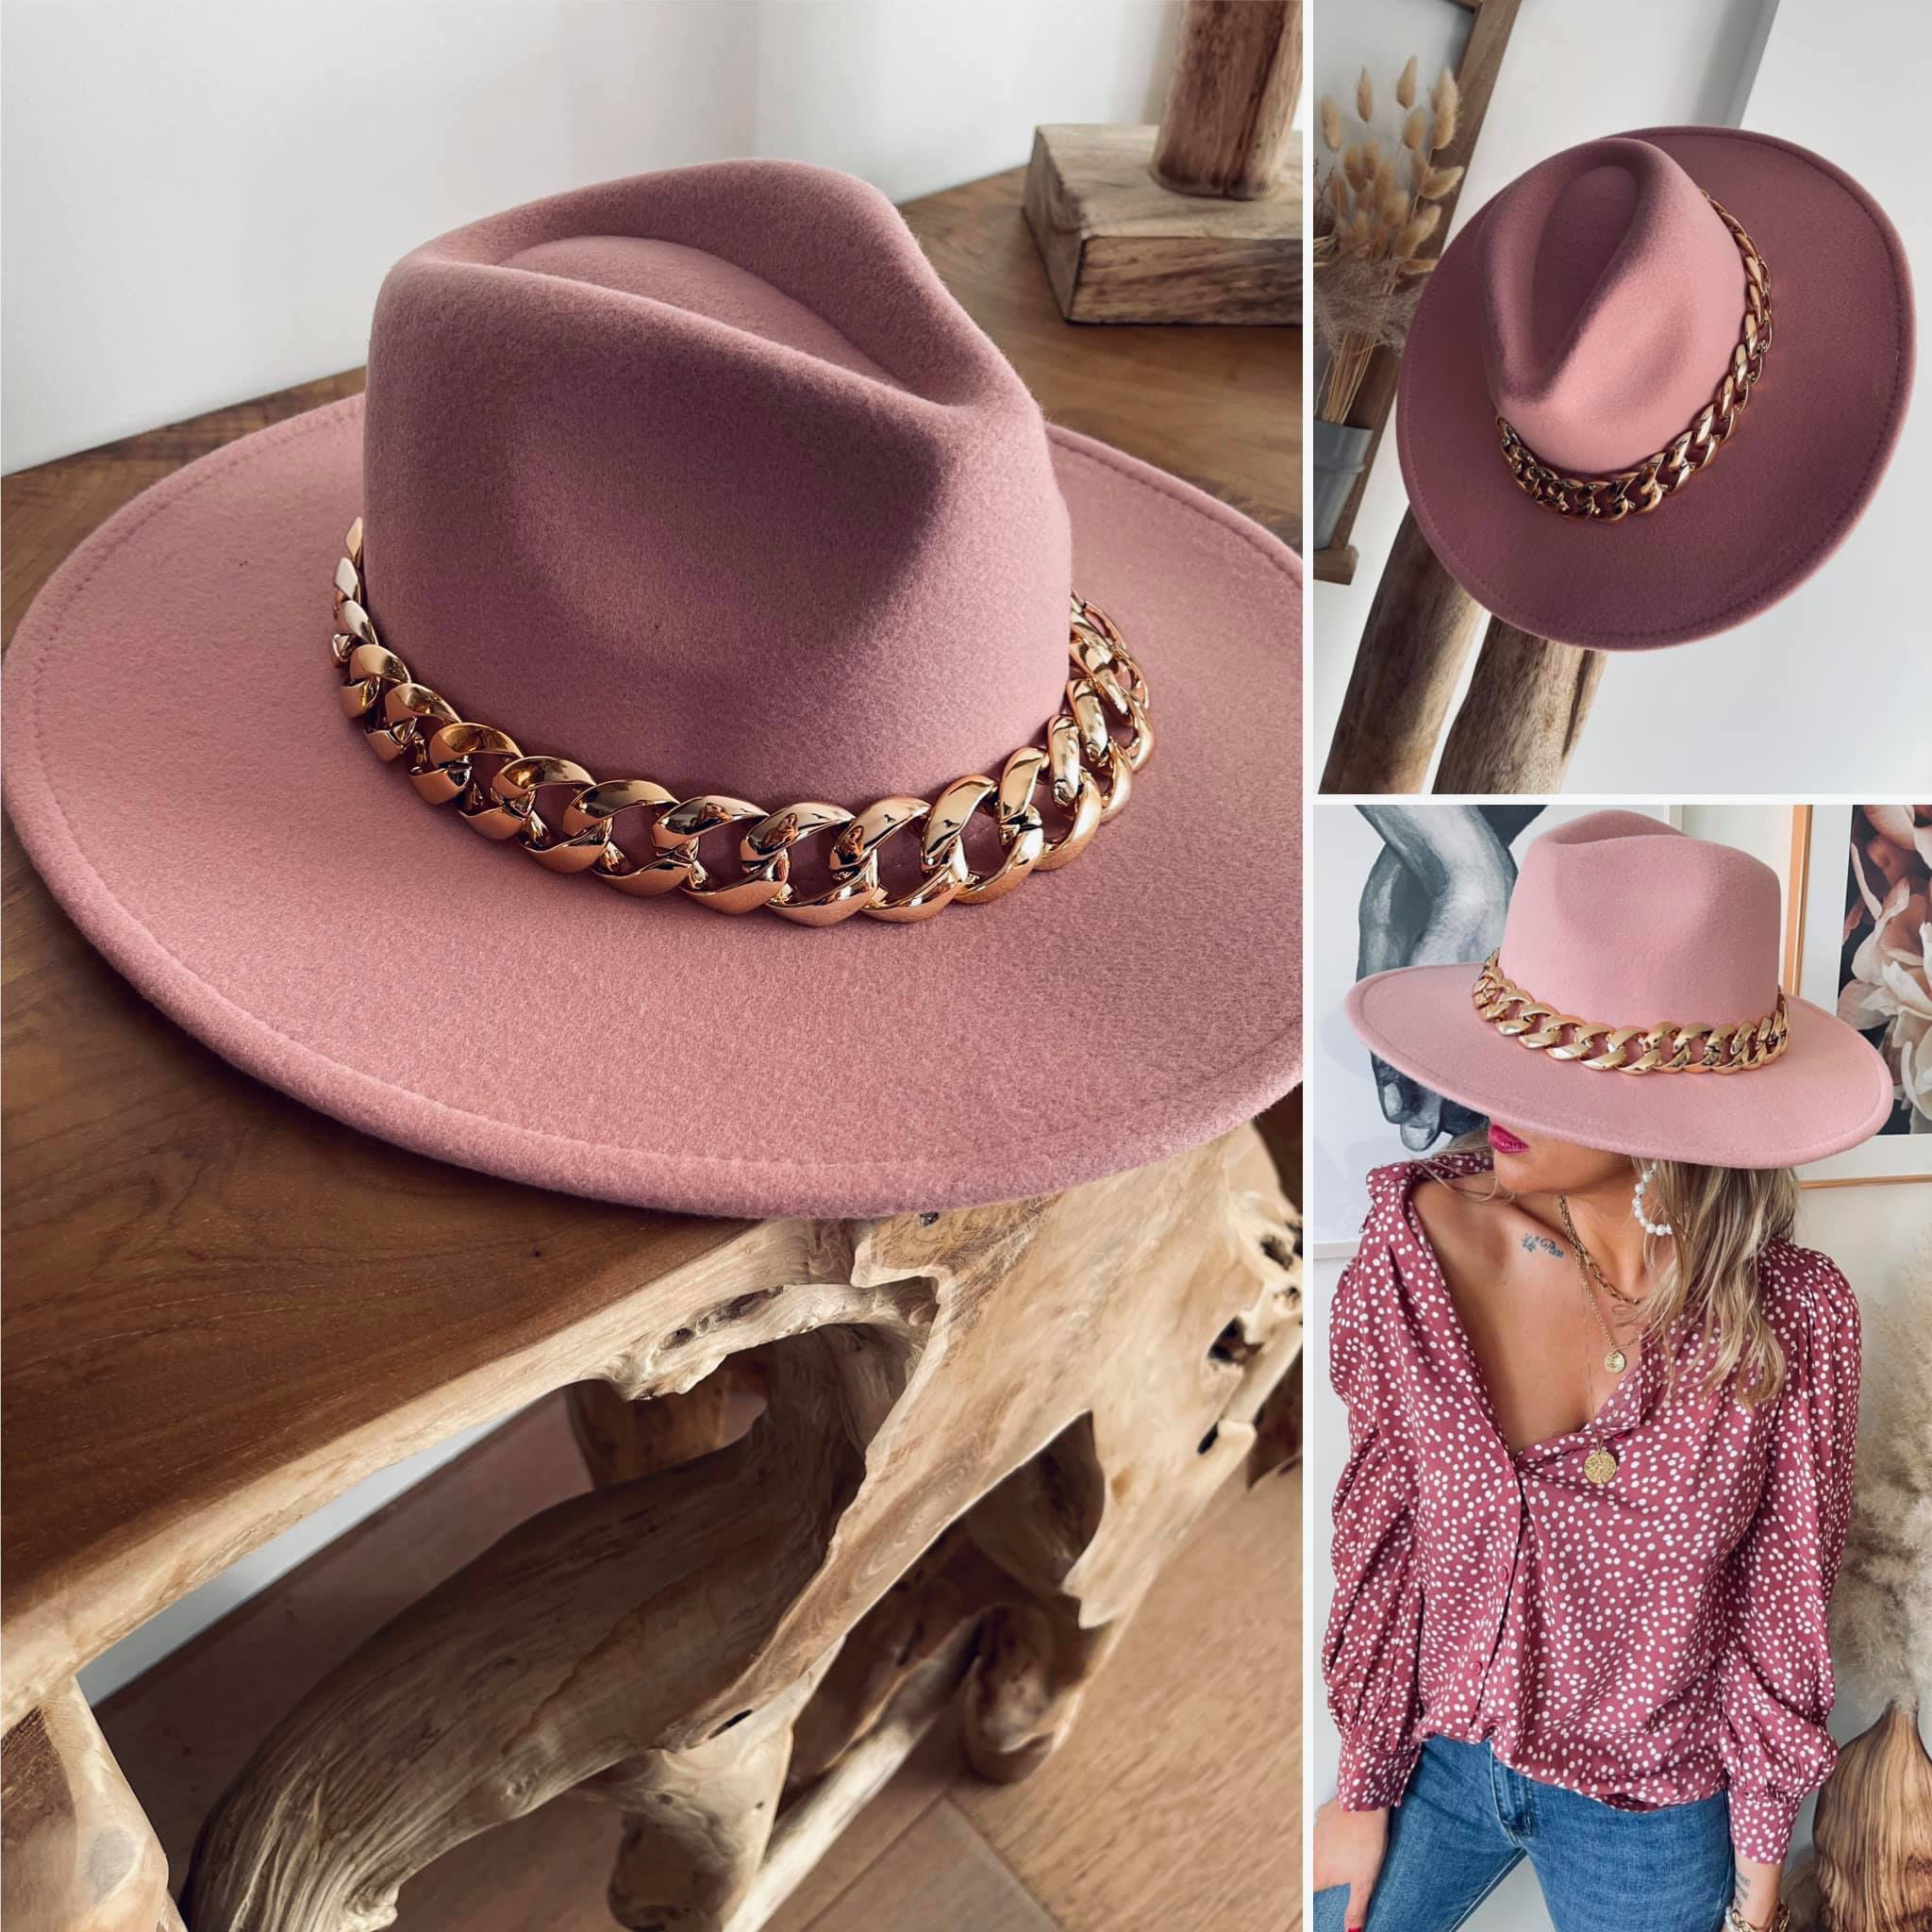 Jazz rose-Chapeau avec chaîne made in ITALY